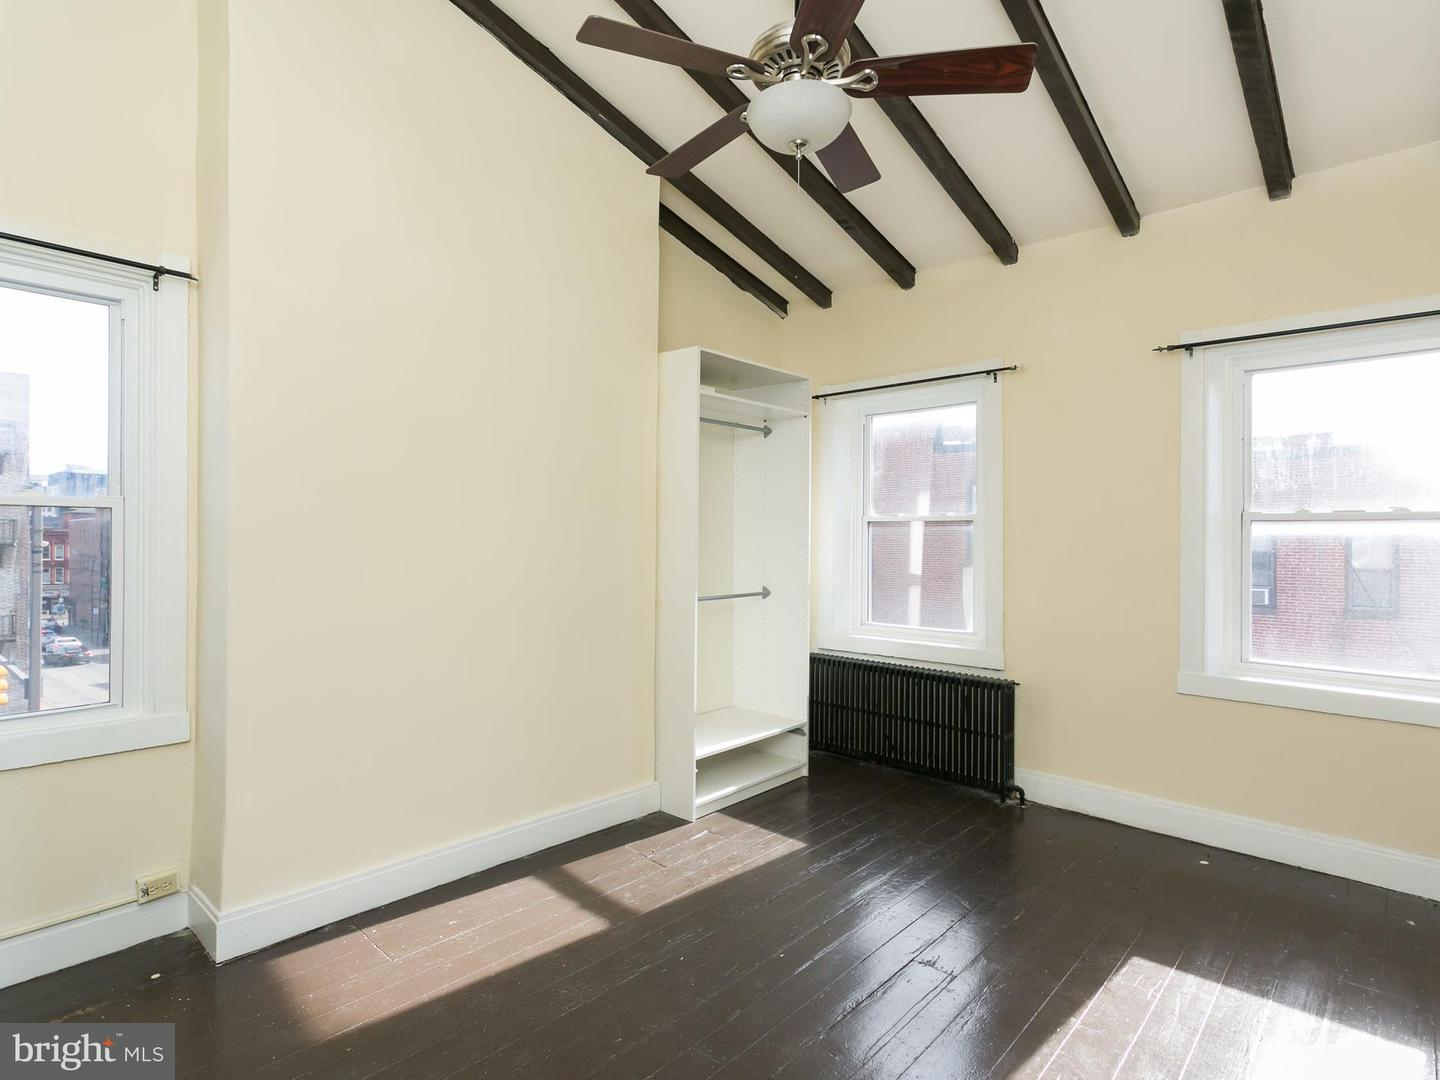 Single Family for Sale at 504 Mulberry St W Baltimore, Maryland 21201 United States